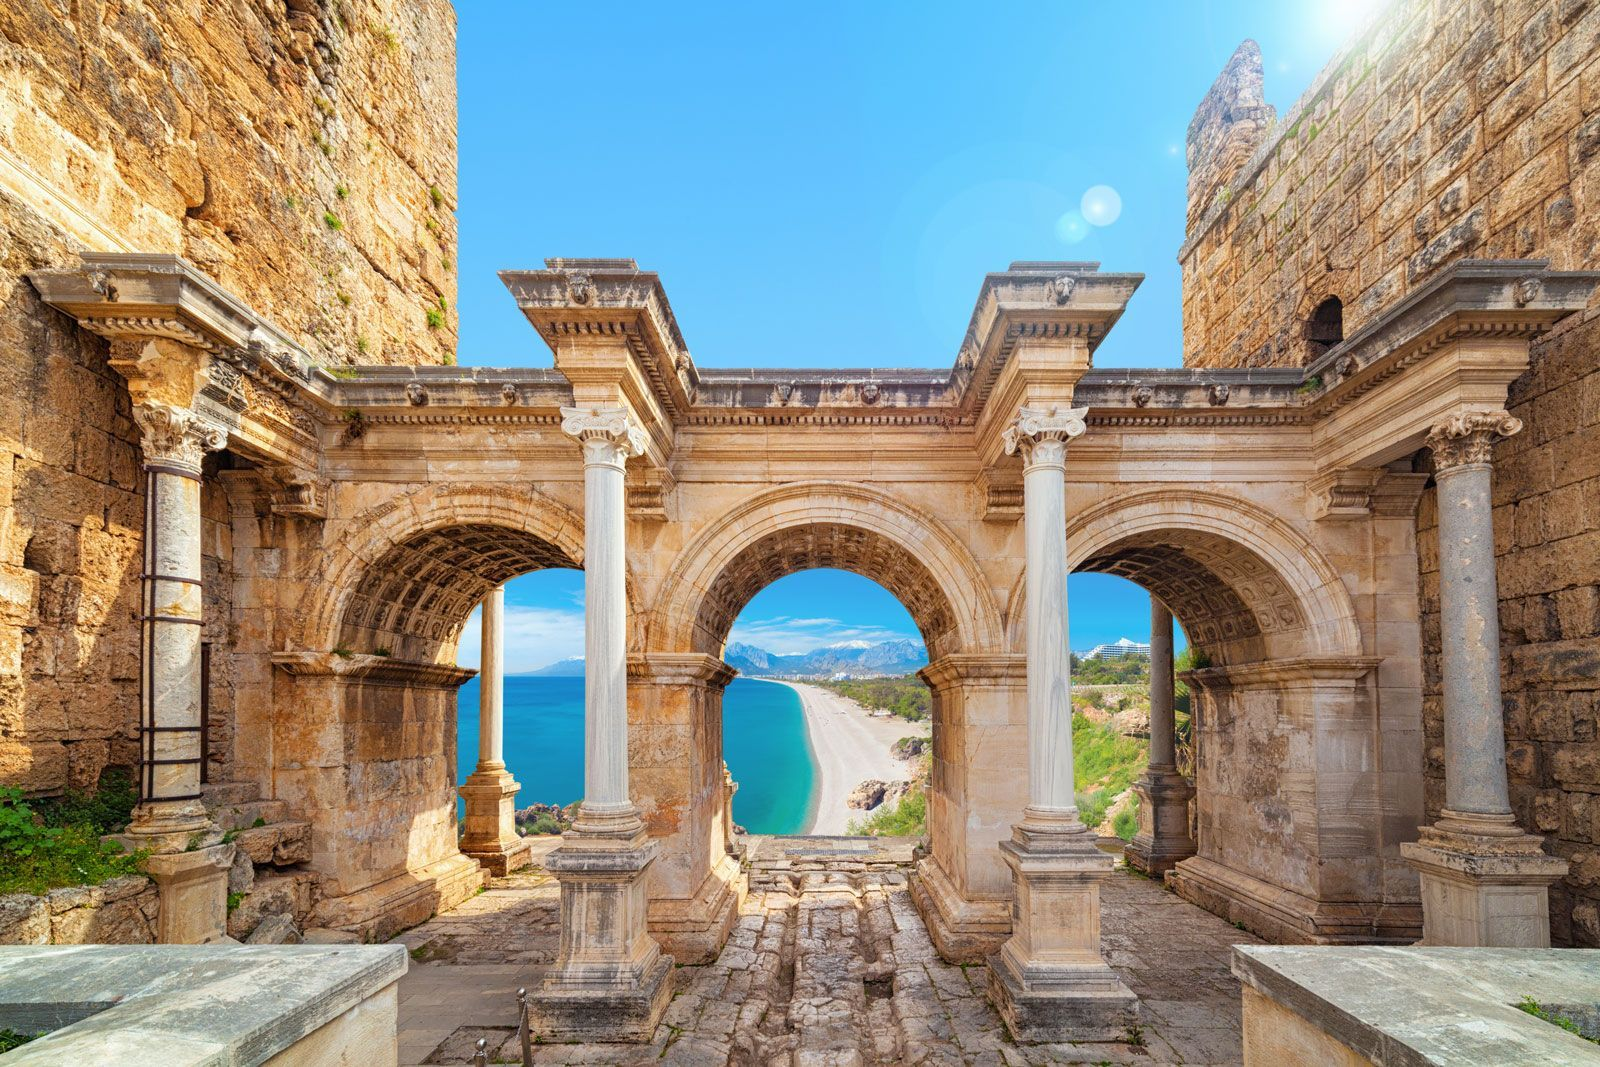 History Behind The Name Antalya The City Was Known As Attaleia Attalia Satalia And Andalya As It Was Founded By The K Antalya Turkey Travel Entrance Gates